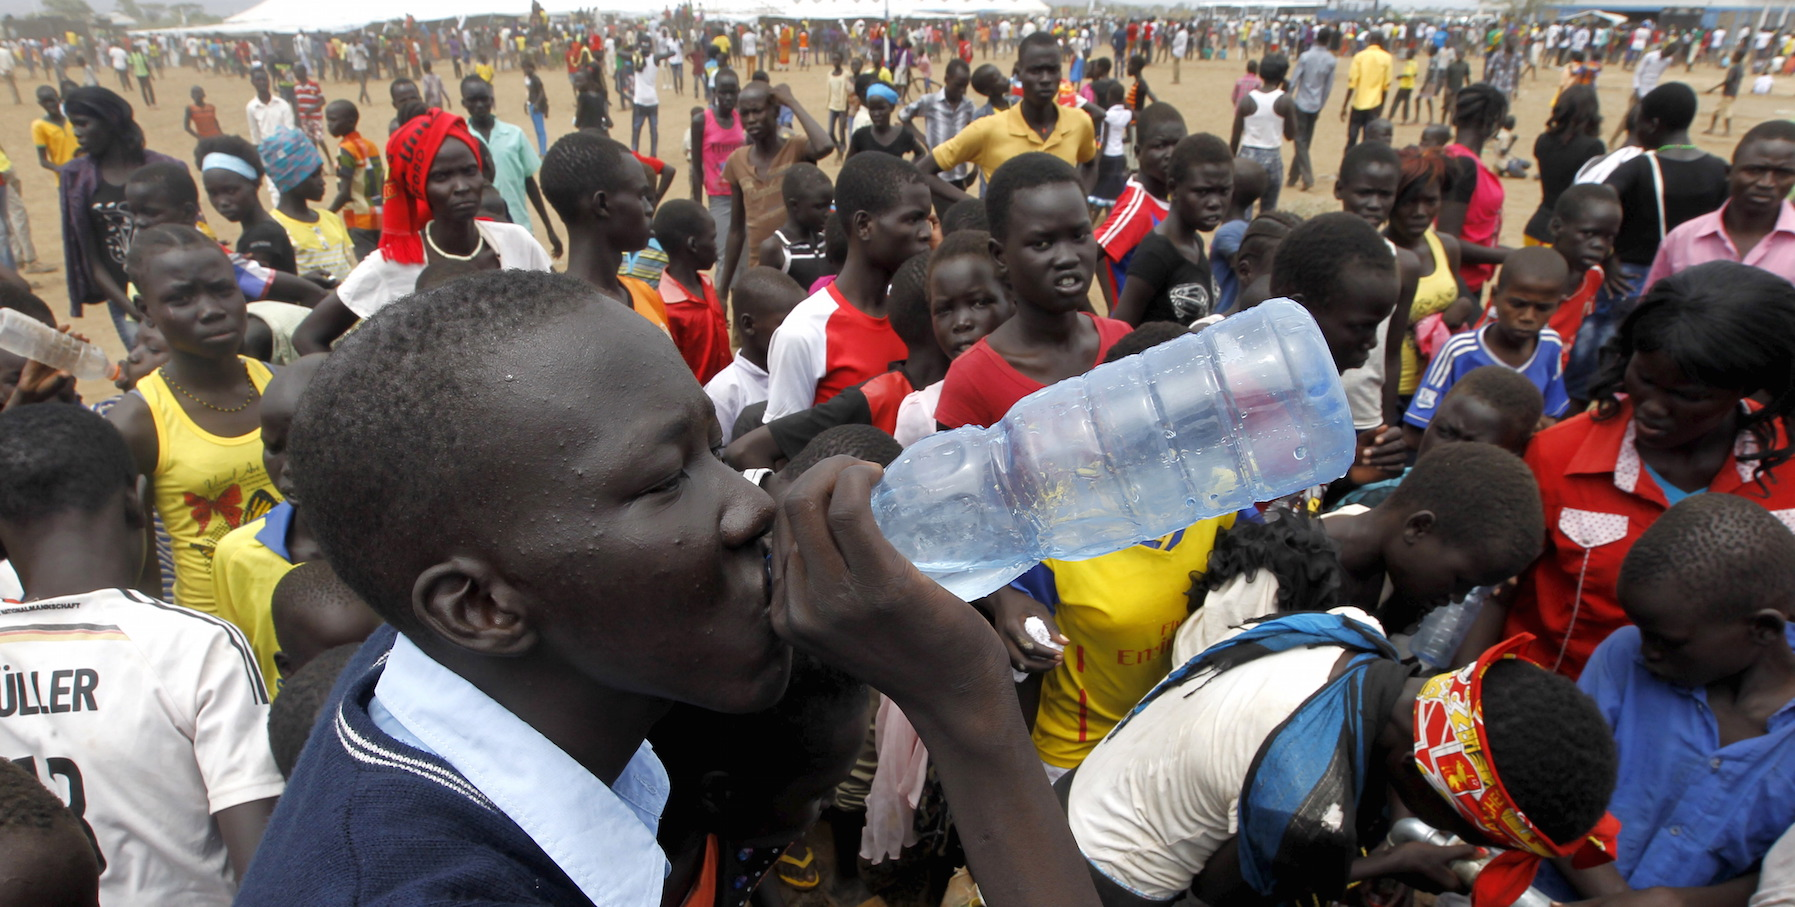 A refugee from South Sudan drinks water at a well during celebrations to mark World Refugee Day at the Kakuma refugee camp in Turkana District, northwest of Kenya's capital Nairobi, June 20, 2015. June 20 is World Refugee Day, an occasion that draws attention to those who have been displaced around the globe. REUTERS/Thomas Mukoya - RTX1HE60